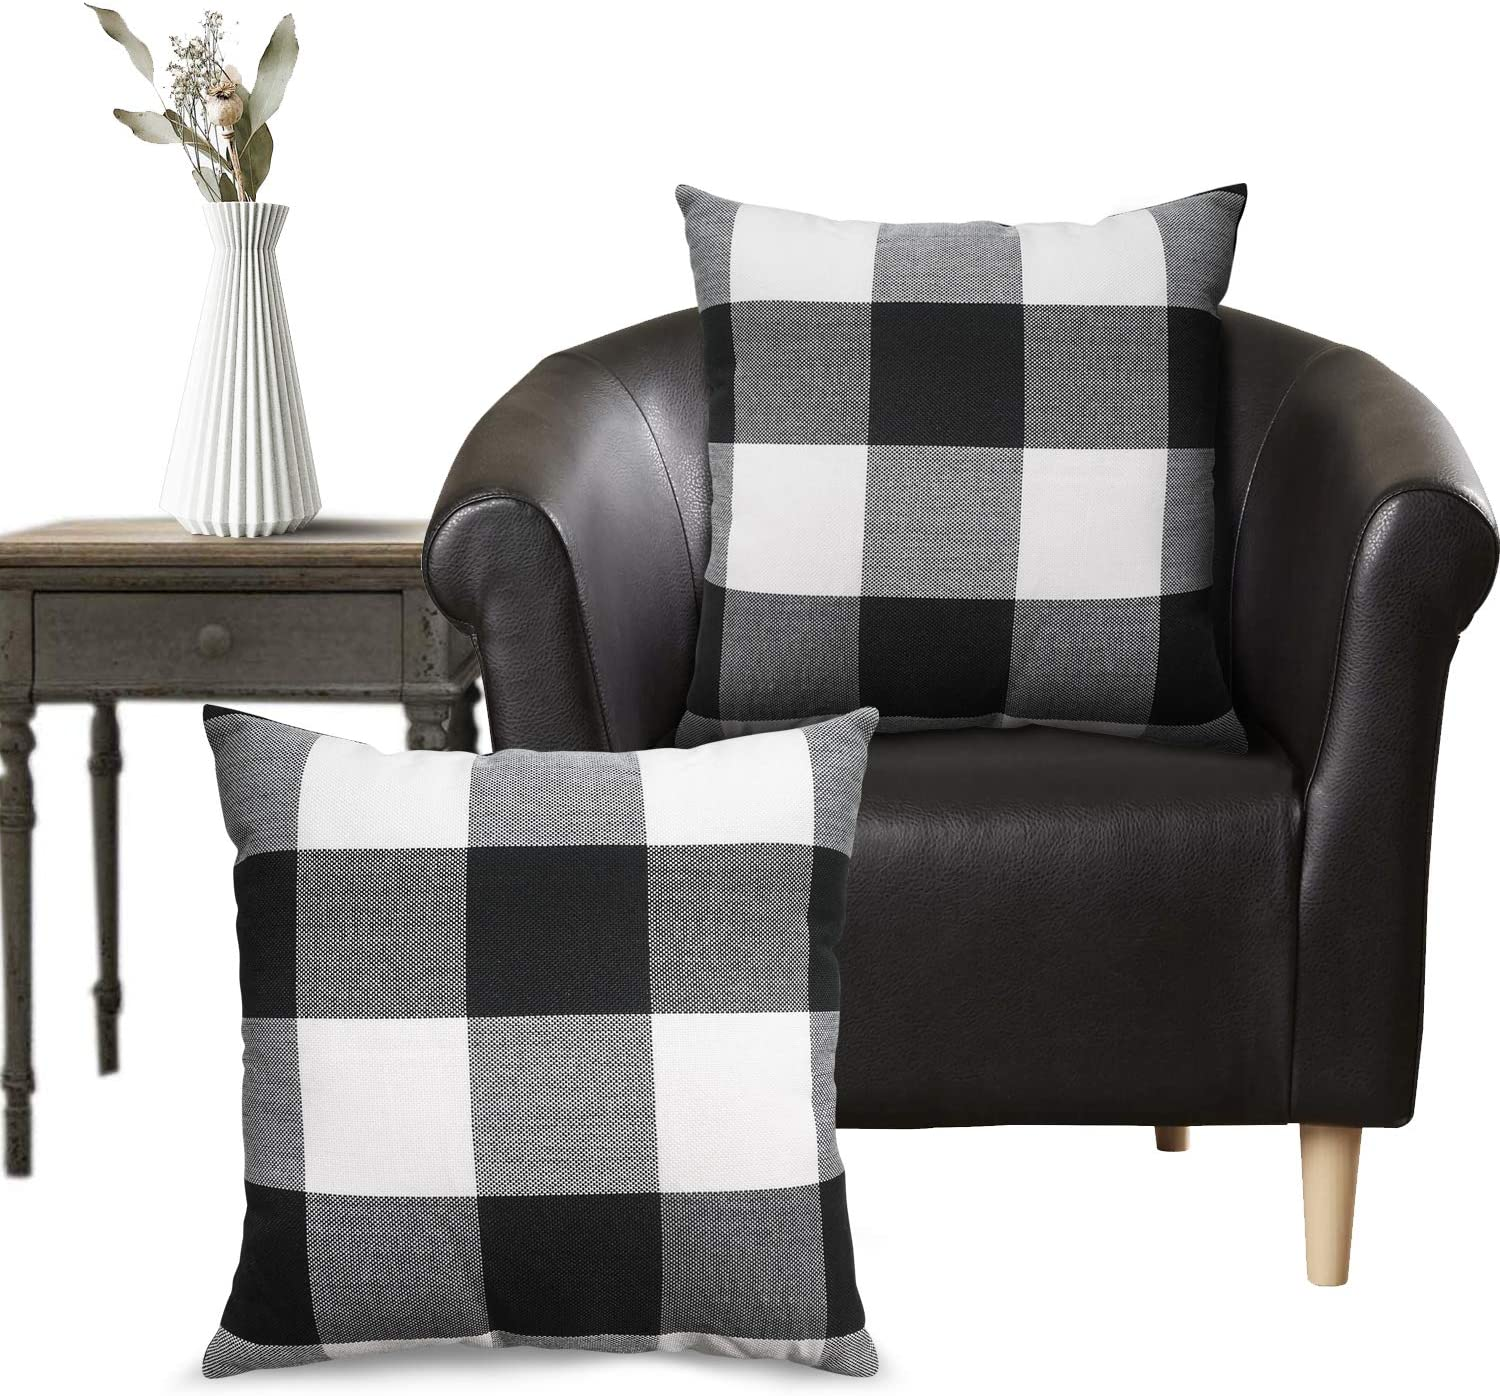 WENDE Plaid Throw Pillow Covers - Buffalo Plaid Pillow Covers 18x18, Black and White Pillow Cover for Farmhouse Home Decor and Christmas Decorations, Set of 2